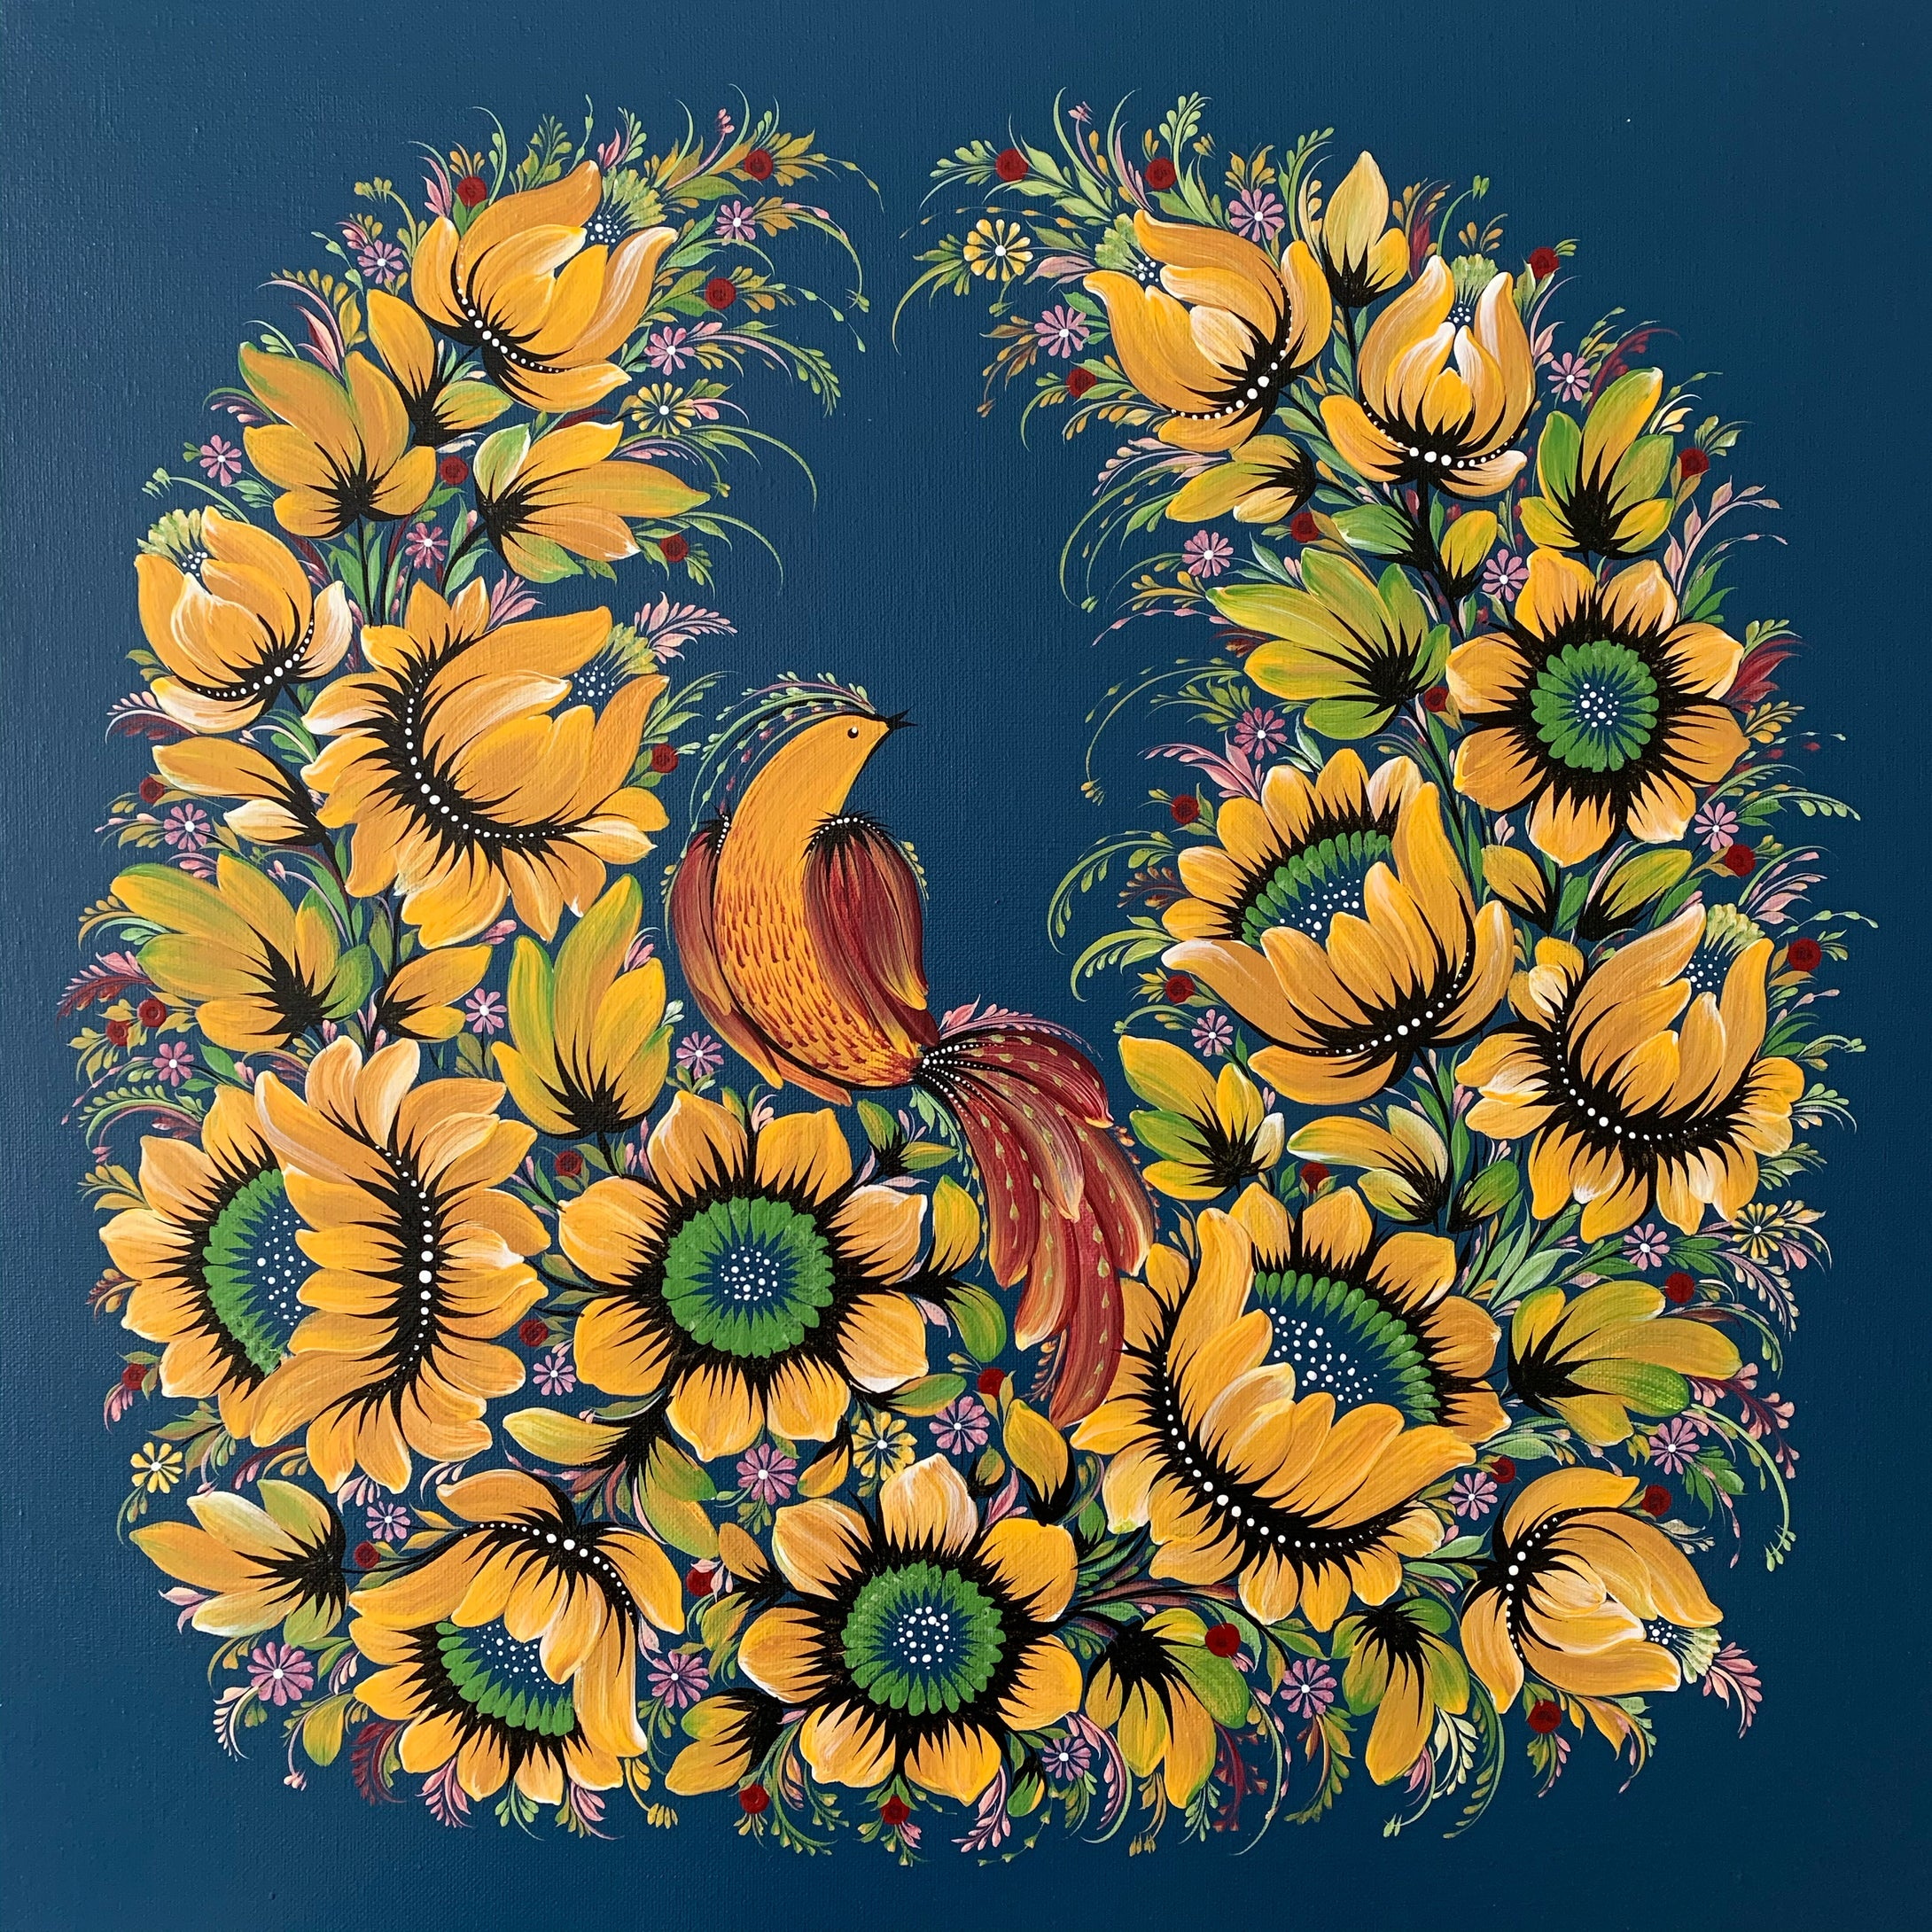 GOLDEN BIRD - 20 in x 20 in (50.8 cm x 50.8 cm)